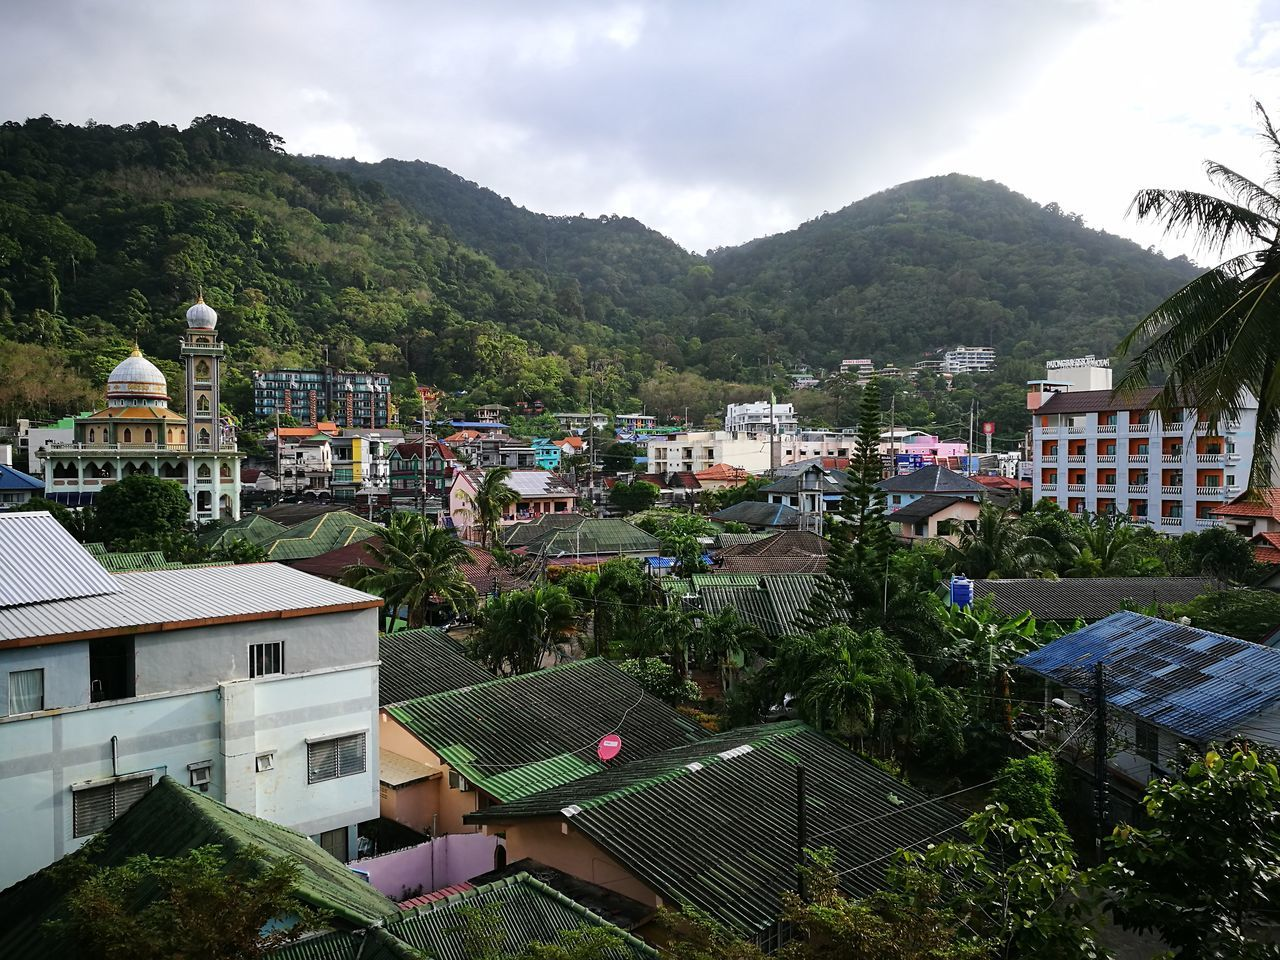 Sinfiltro Vistas Ventana phuket Architecture Building Exterior Built Structure Mountain High Angle View Tree Residential Building Residential Structure Cloud - Sky Residential District Sky Town Outdoors Green Color Rooftop Day No People Majestic Mountain Range Scenics